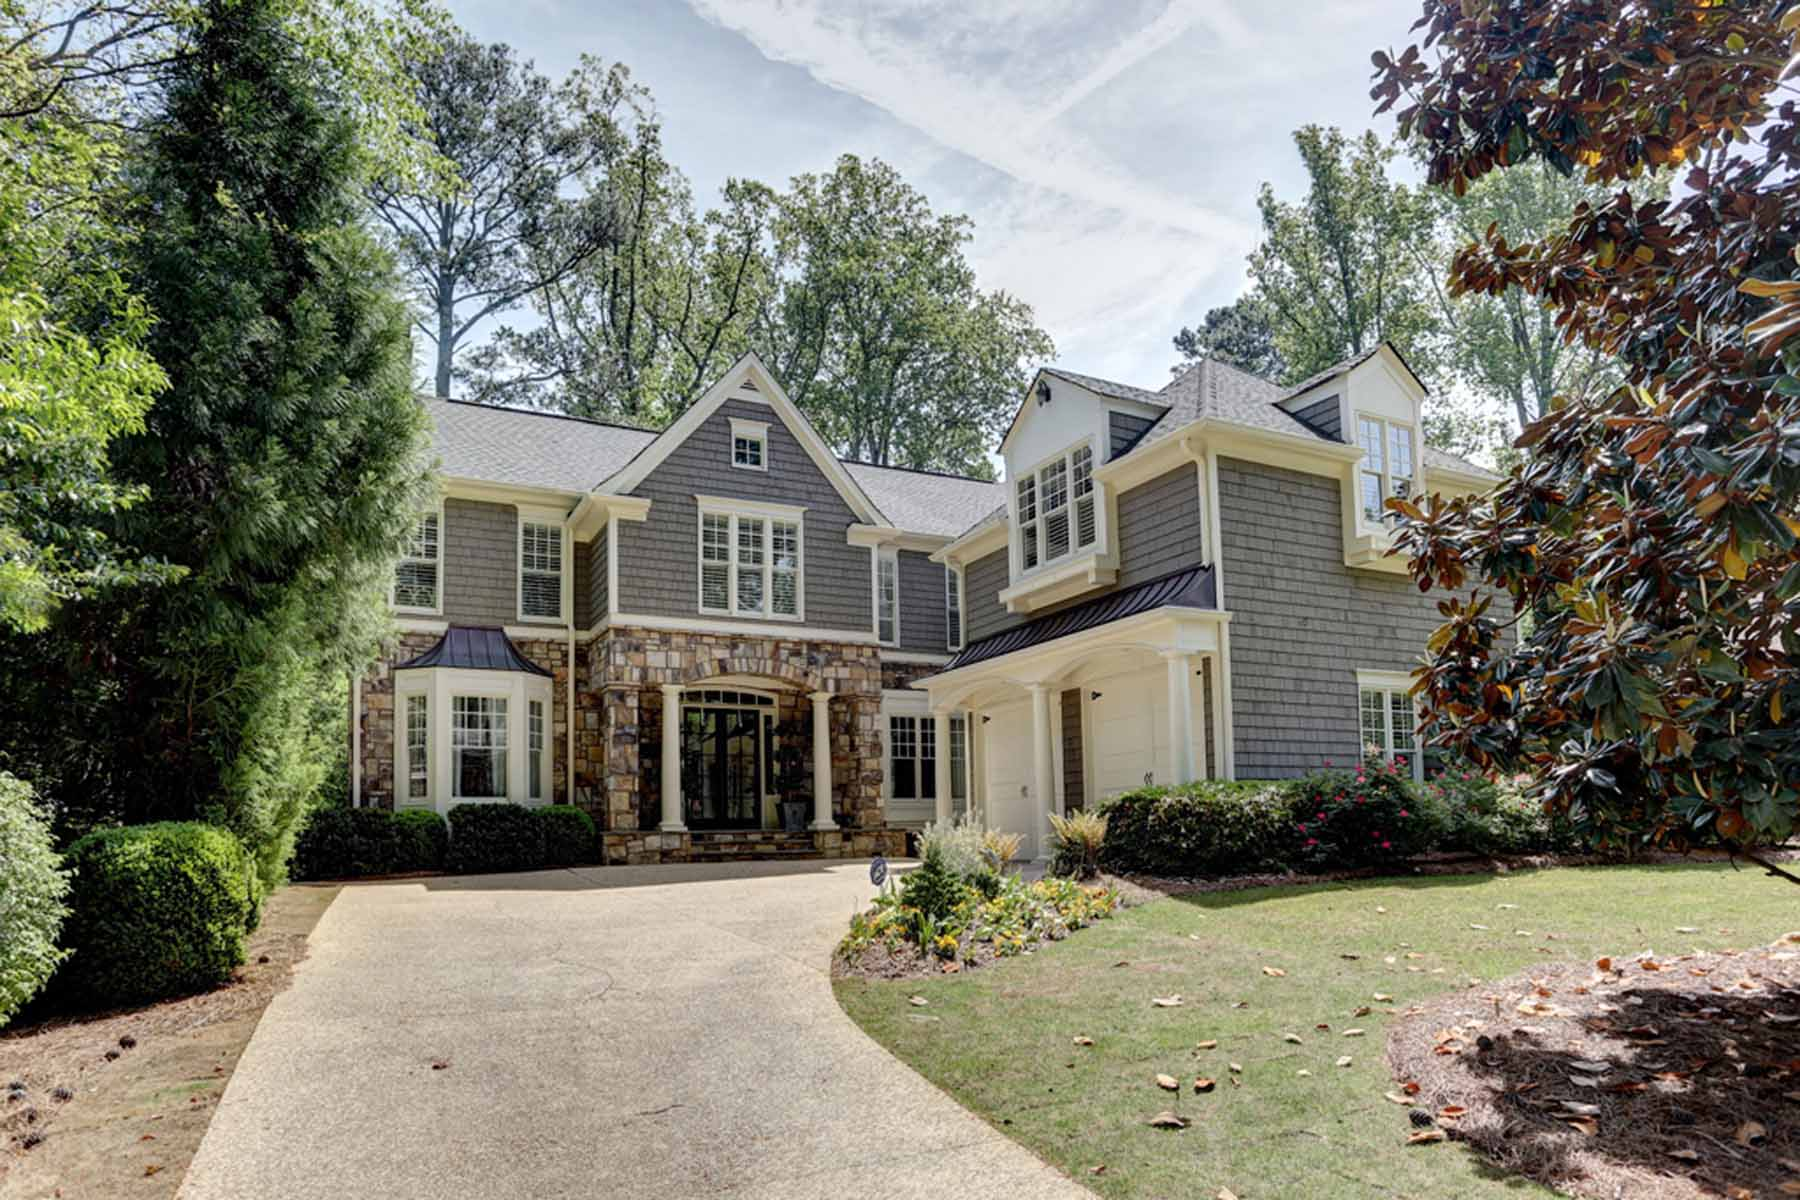 단독 가정 주택 용 매매 에 Remarkable Spitzmiller & Norris custom home in Morningside 1675 Wildwood Road NE Morningside, Atlanta, 조지아, 30306 미국